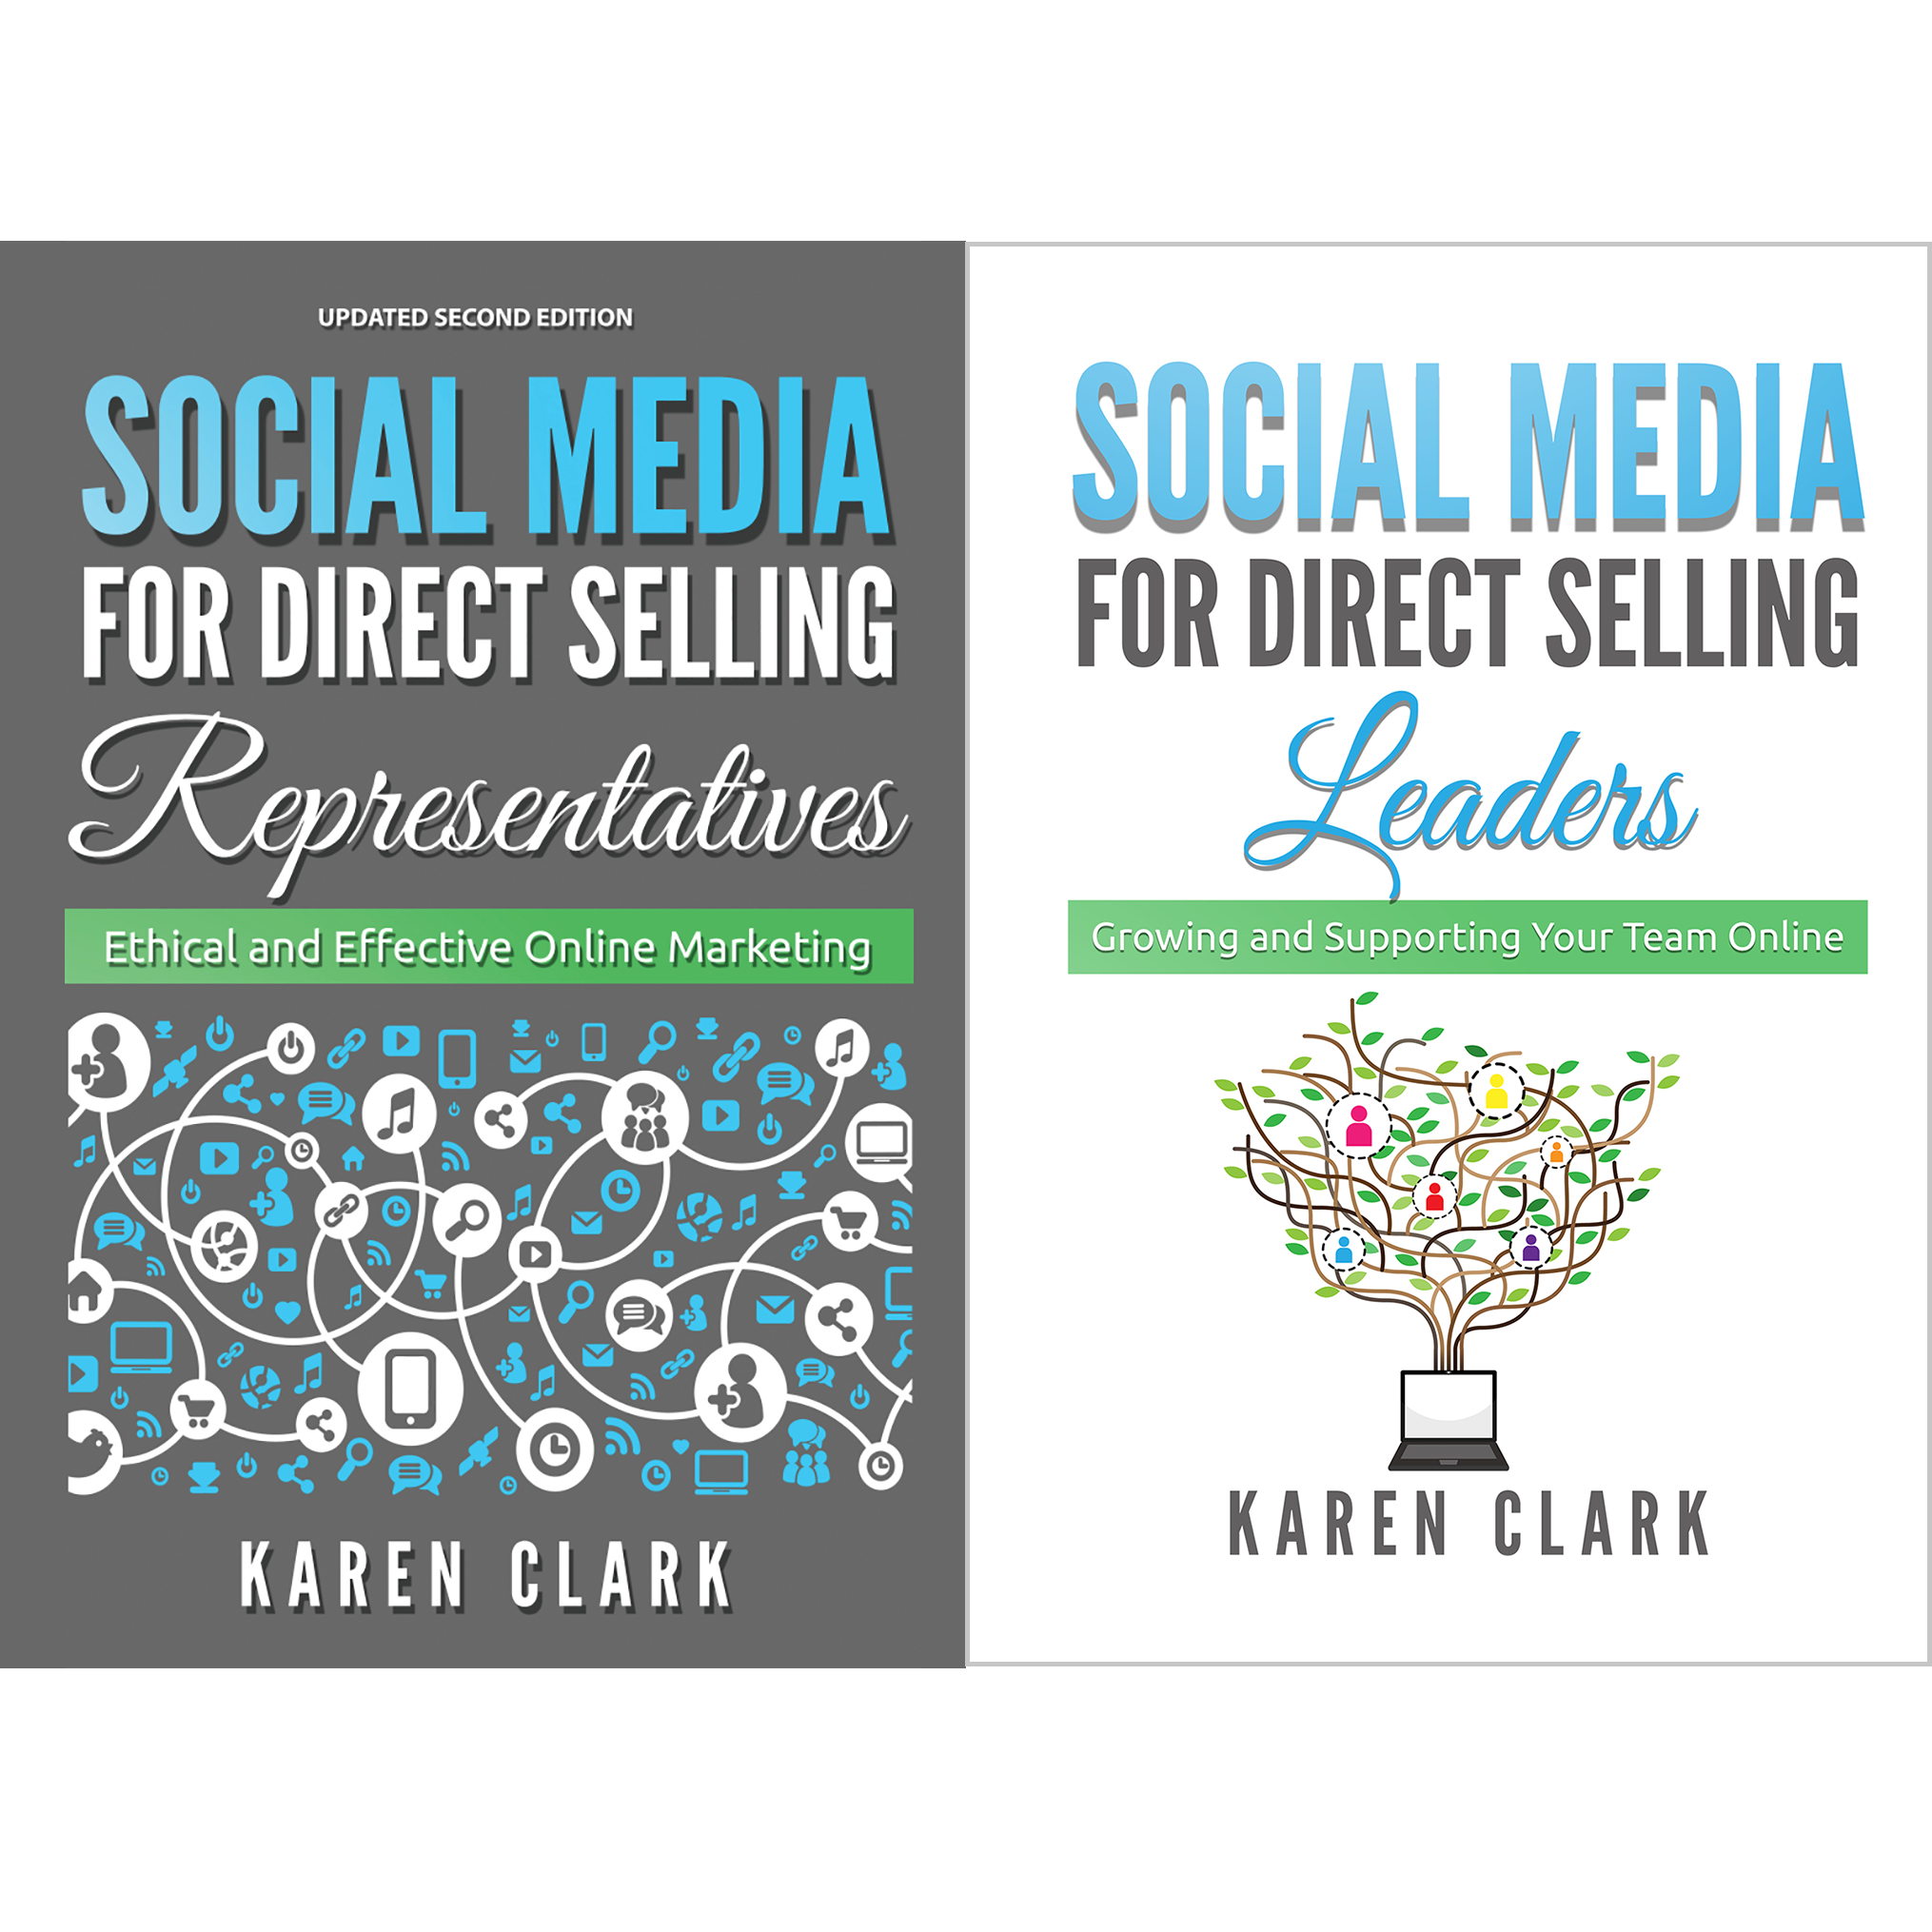 Social Media for Direct Selling Book Series by Karen Clark